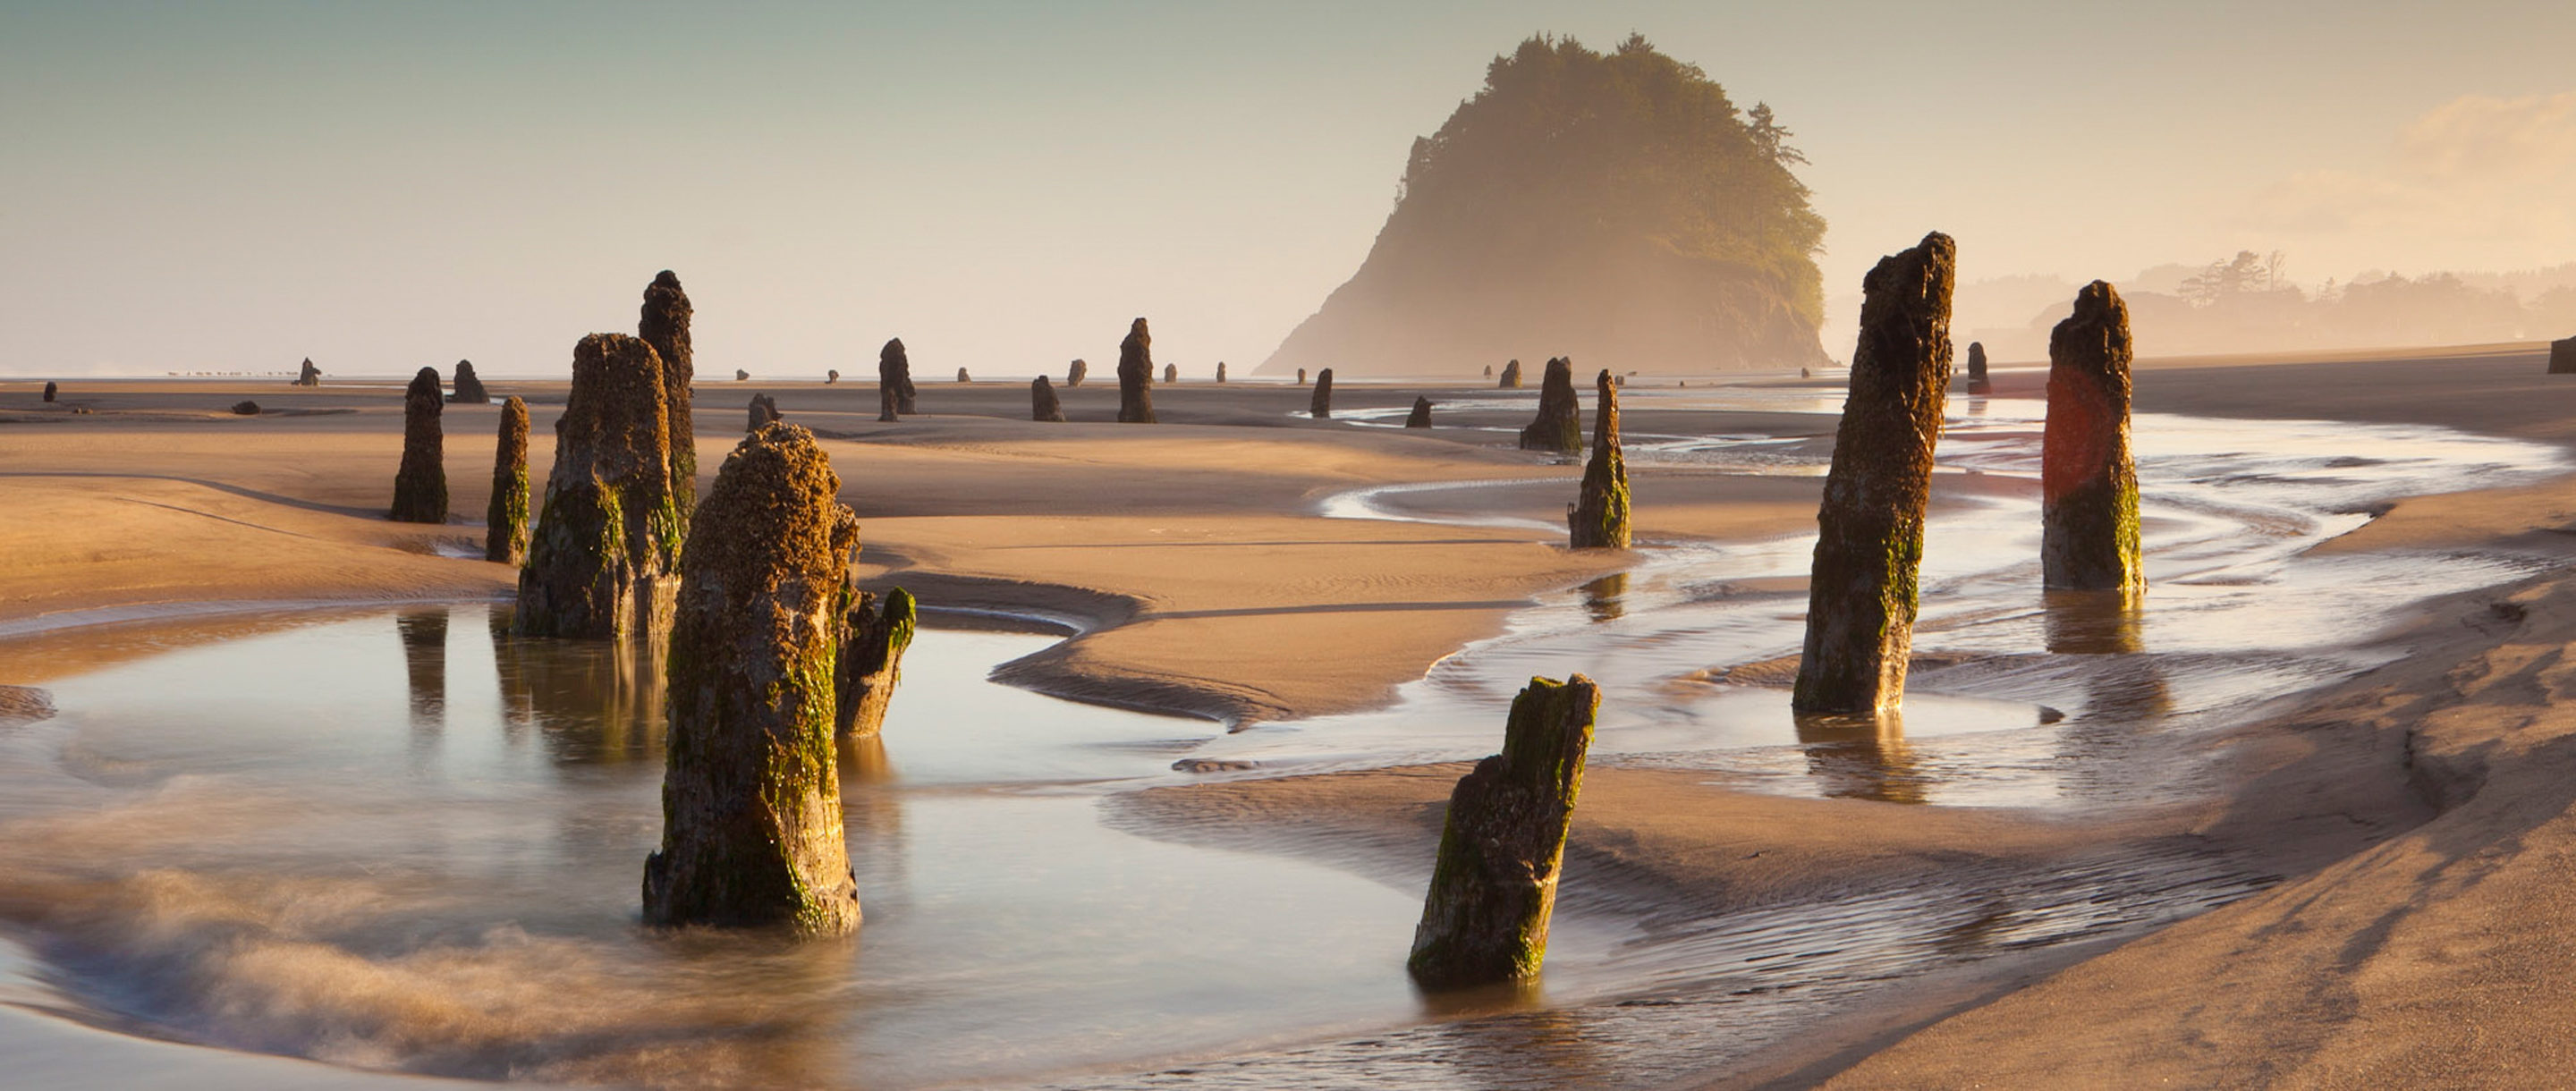 A sandy beach at low tide dotted with ancient tree stumps.